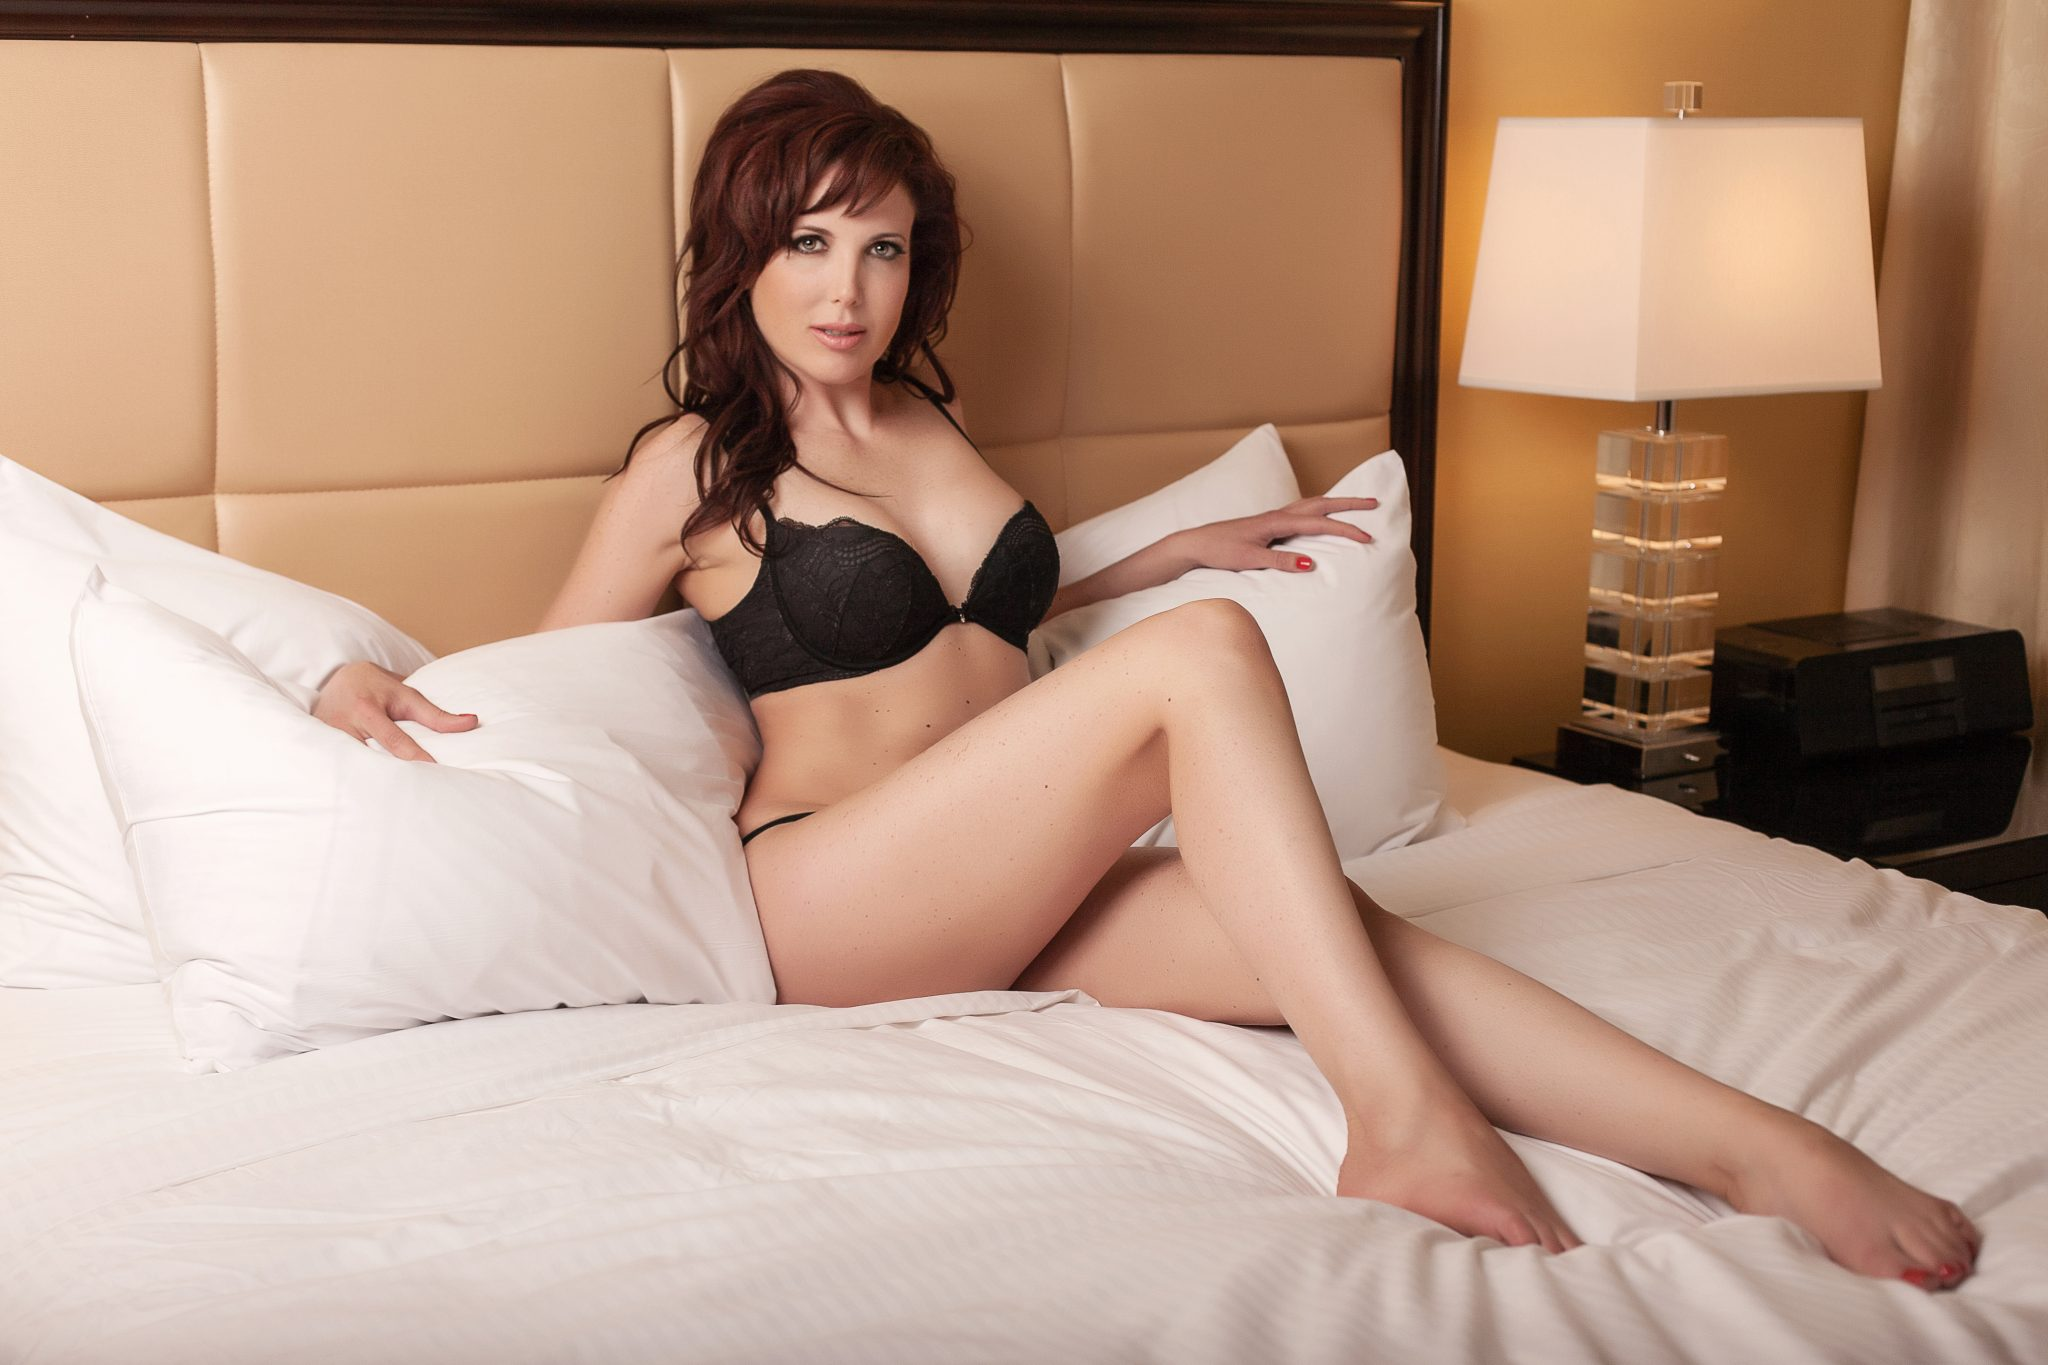 A natural and approachable boudoir pose in Vegas.